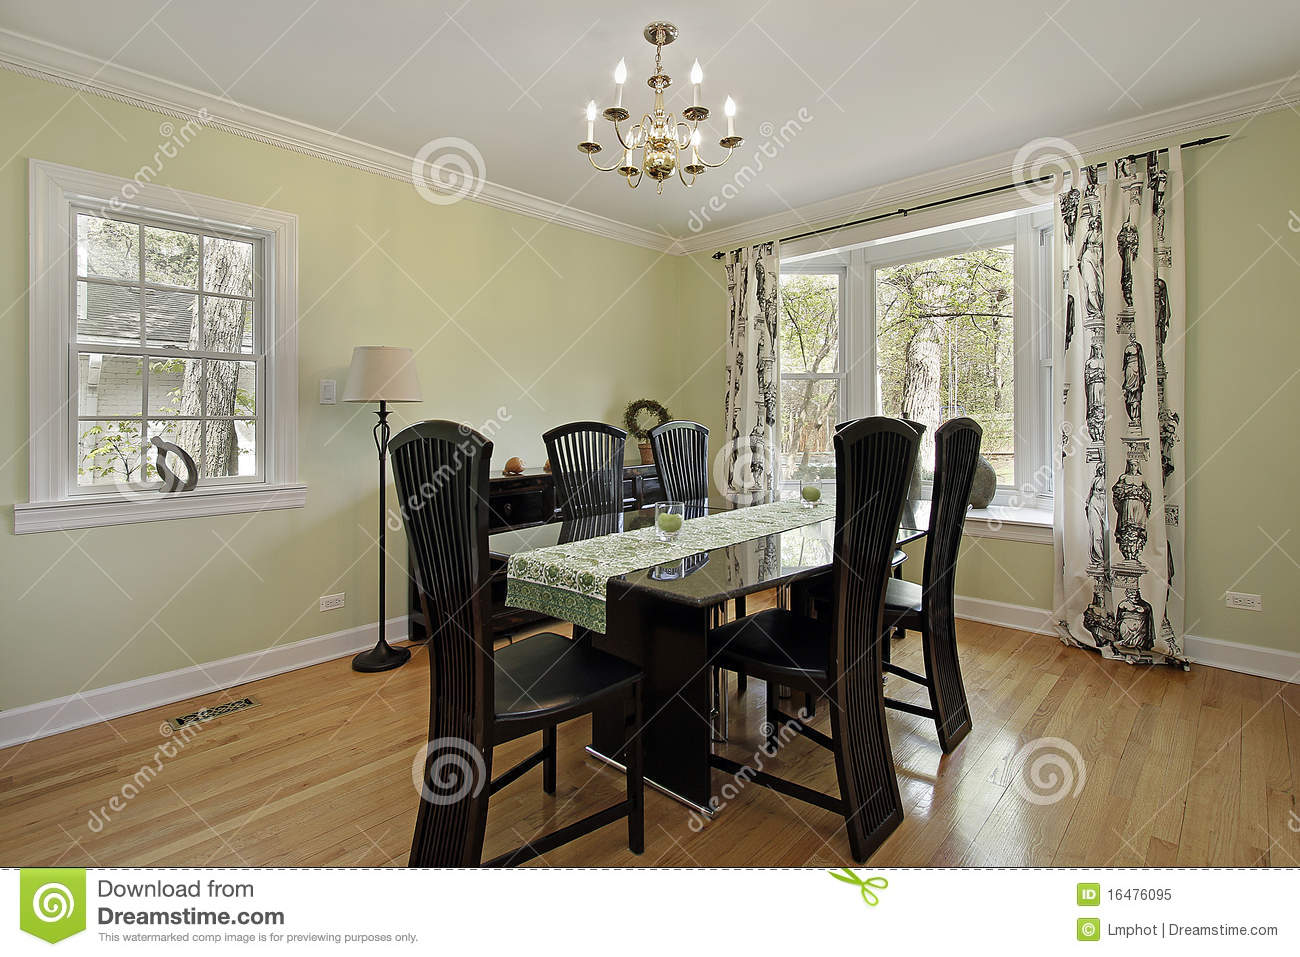 Dining Room With Light Green Walls Stock Image Image